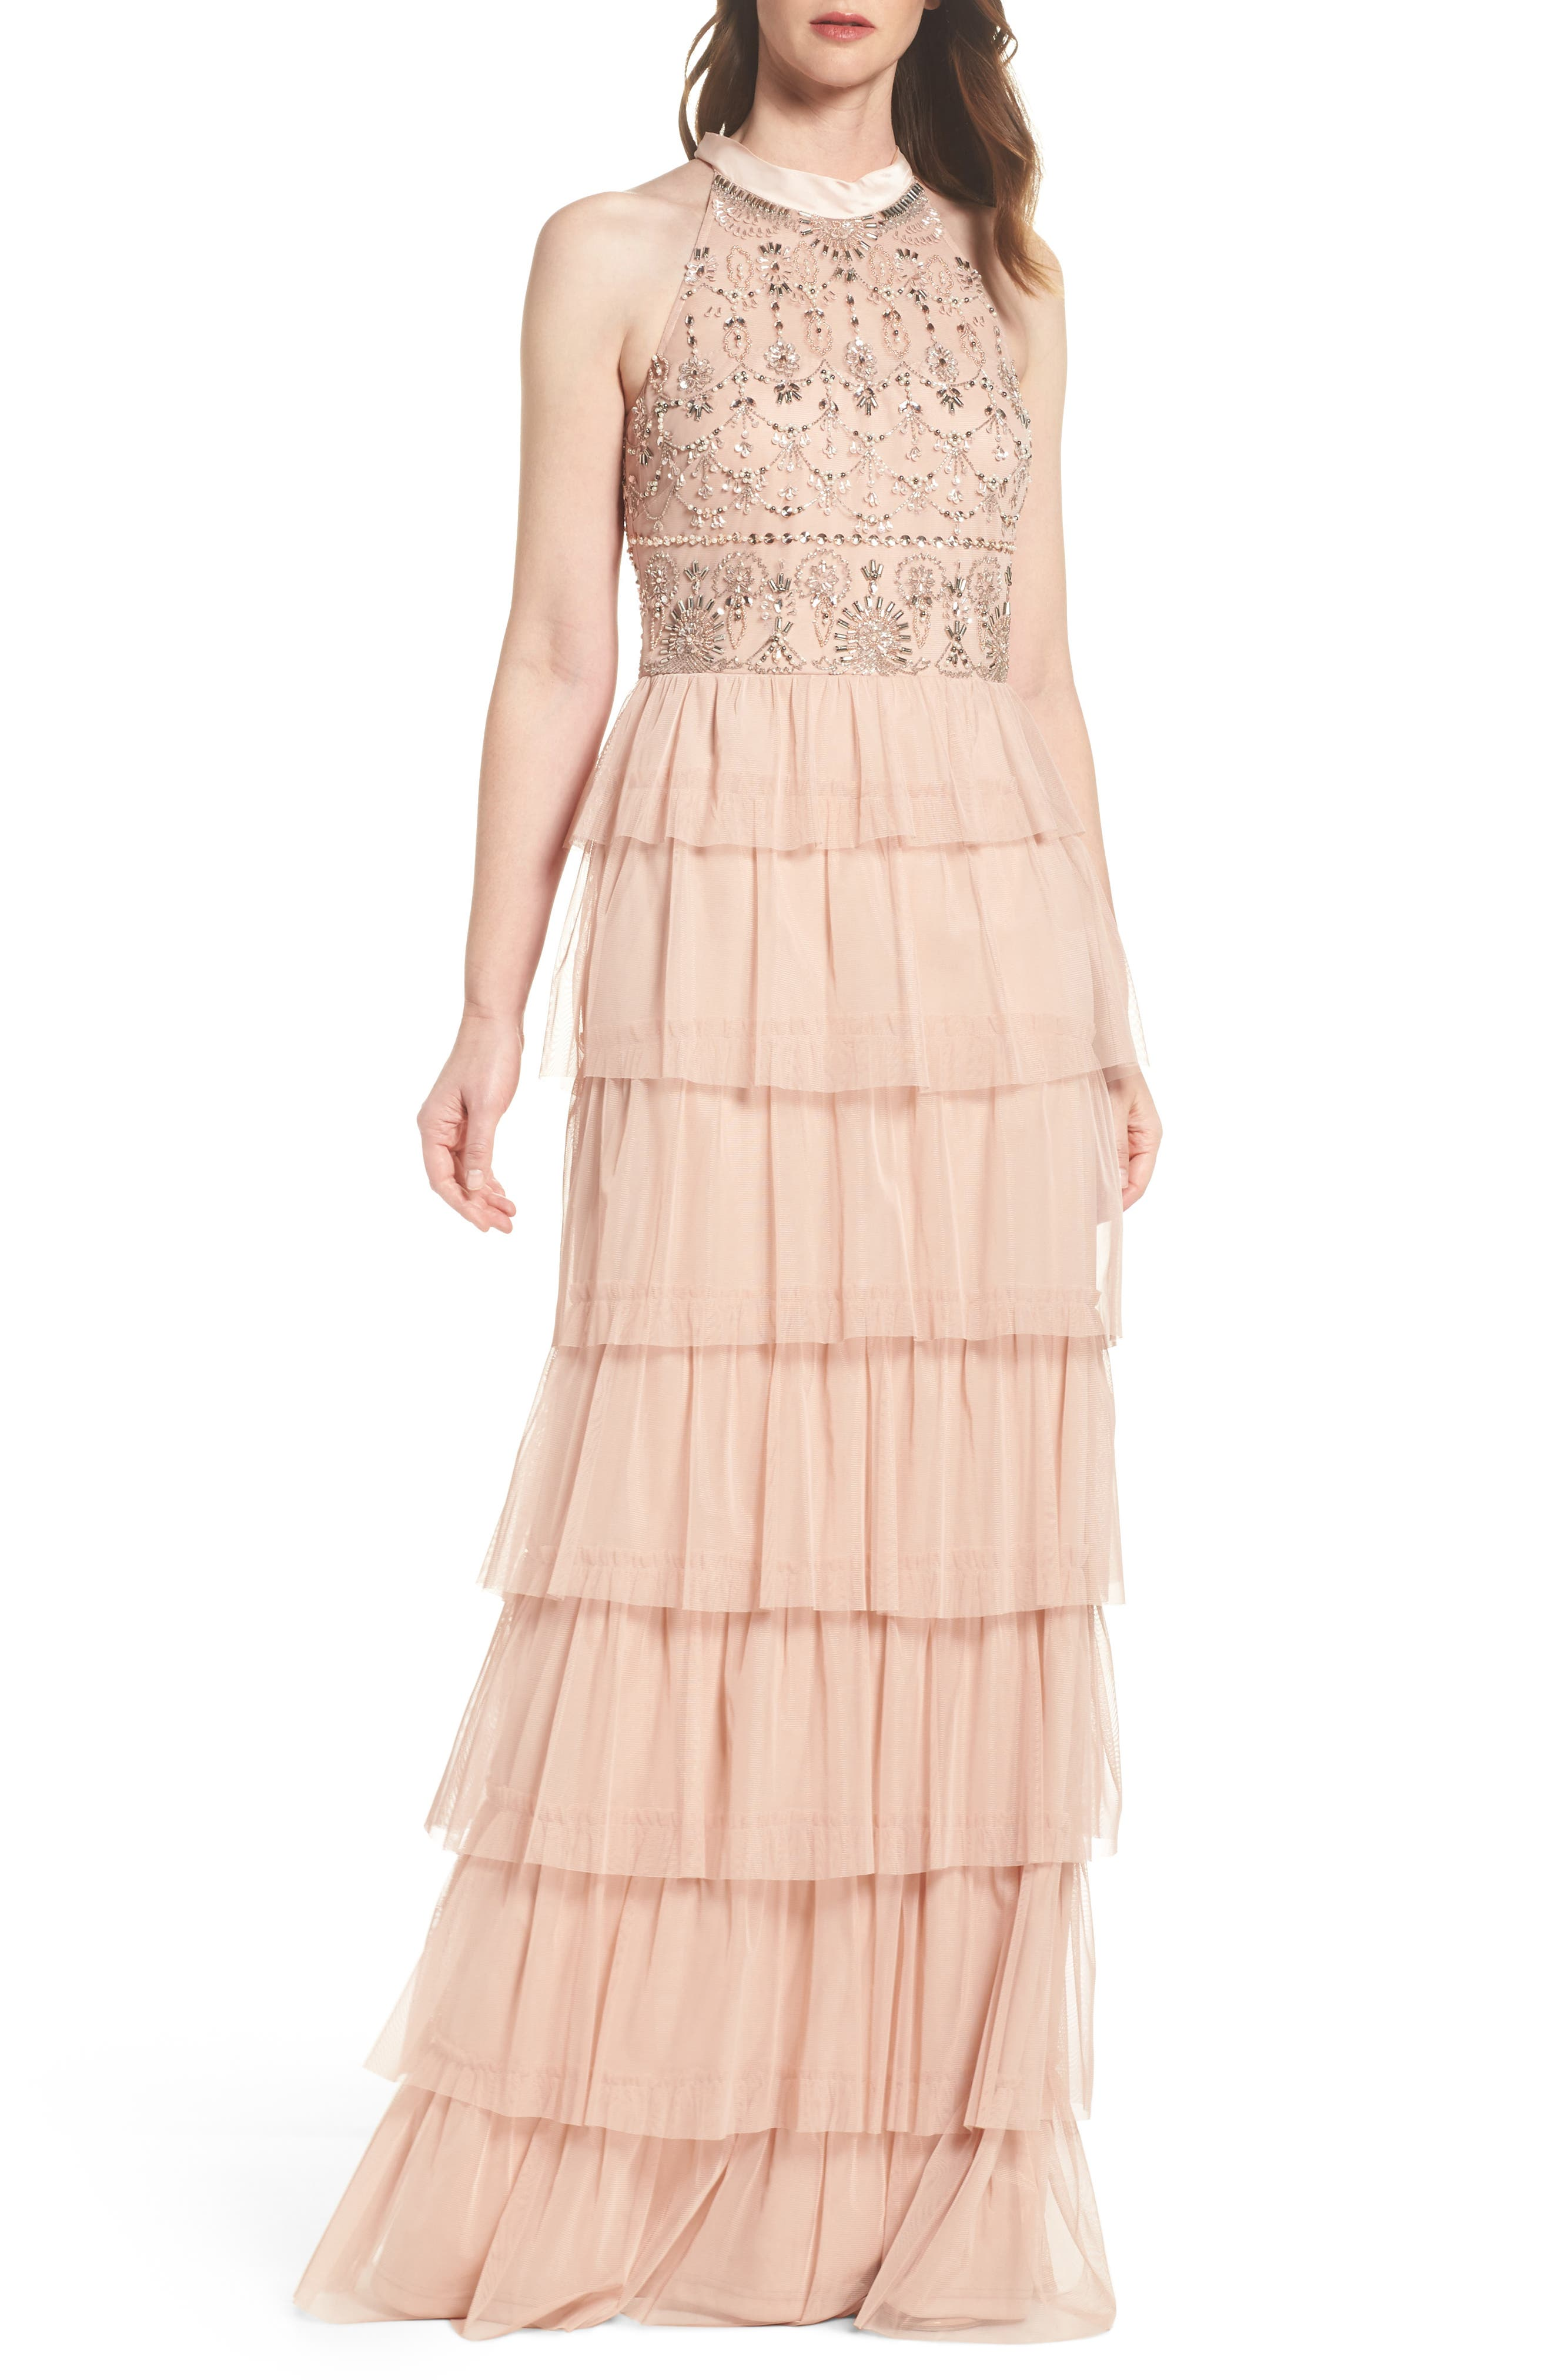 Embellished Tiered Maxi Dress,                             Main thumbnail 1, color,                             684